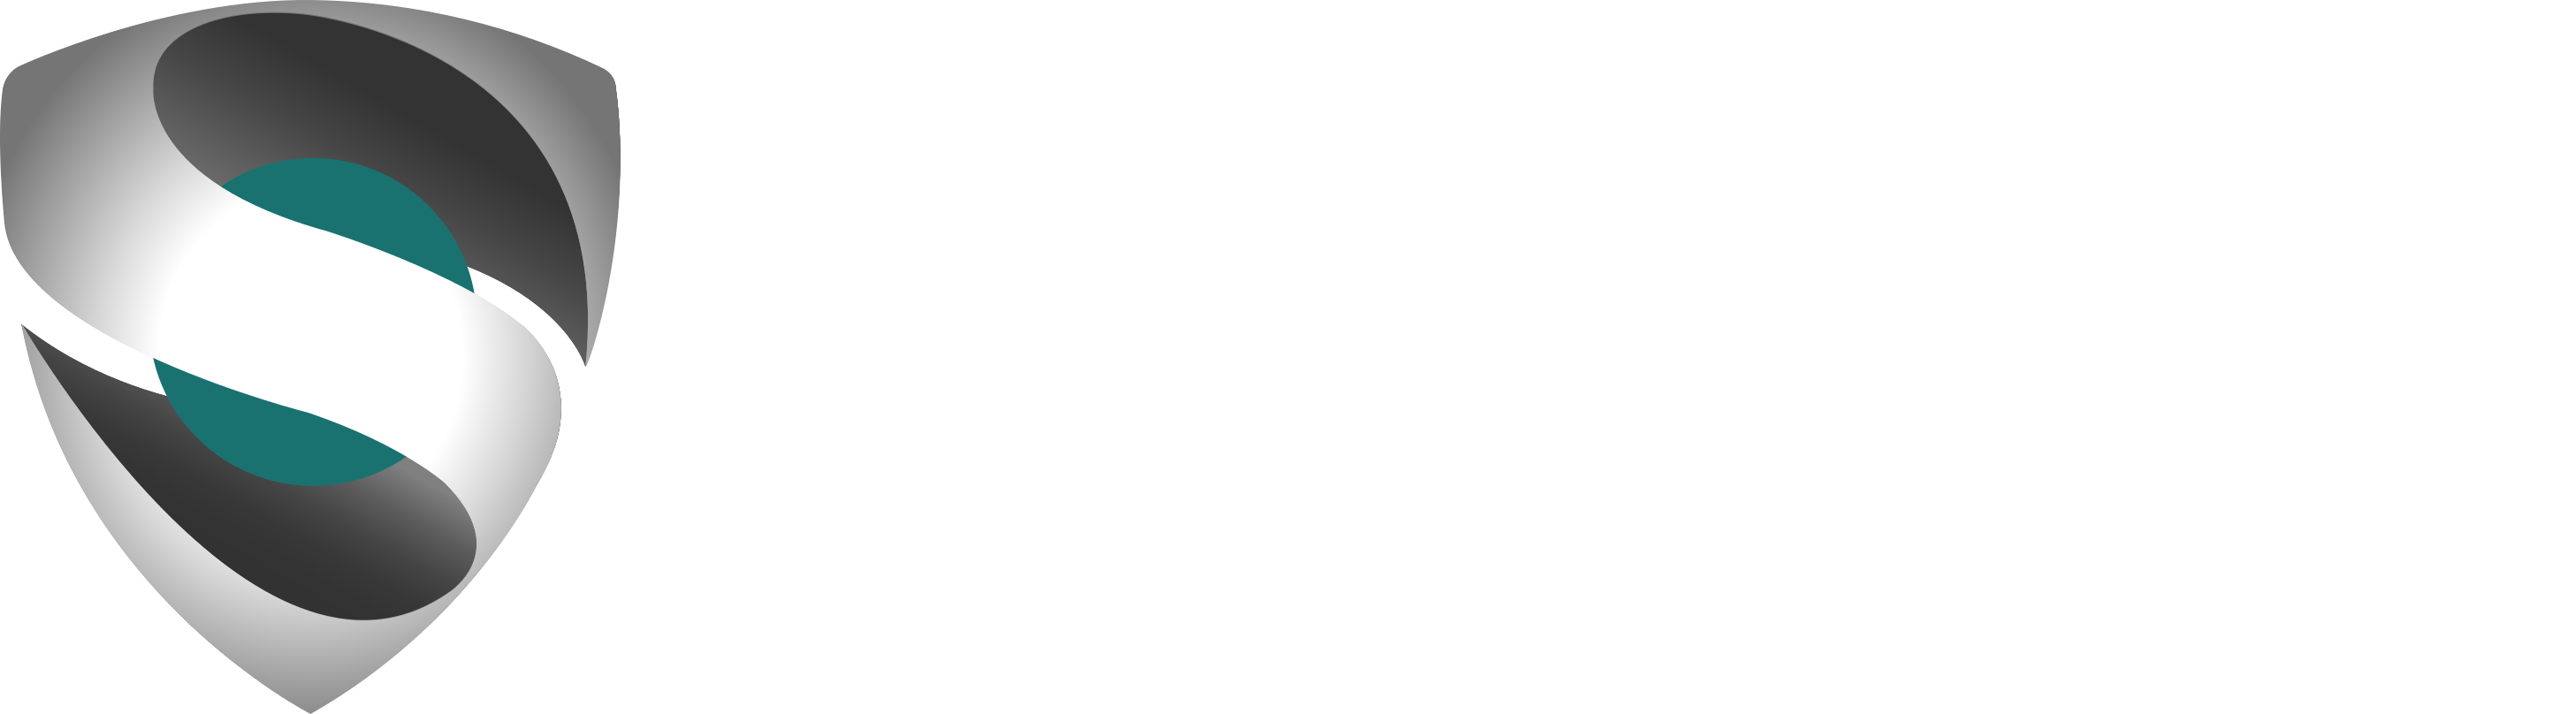 secureelance